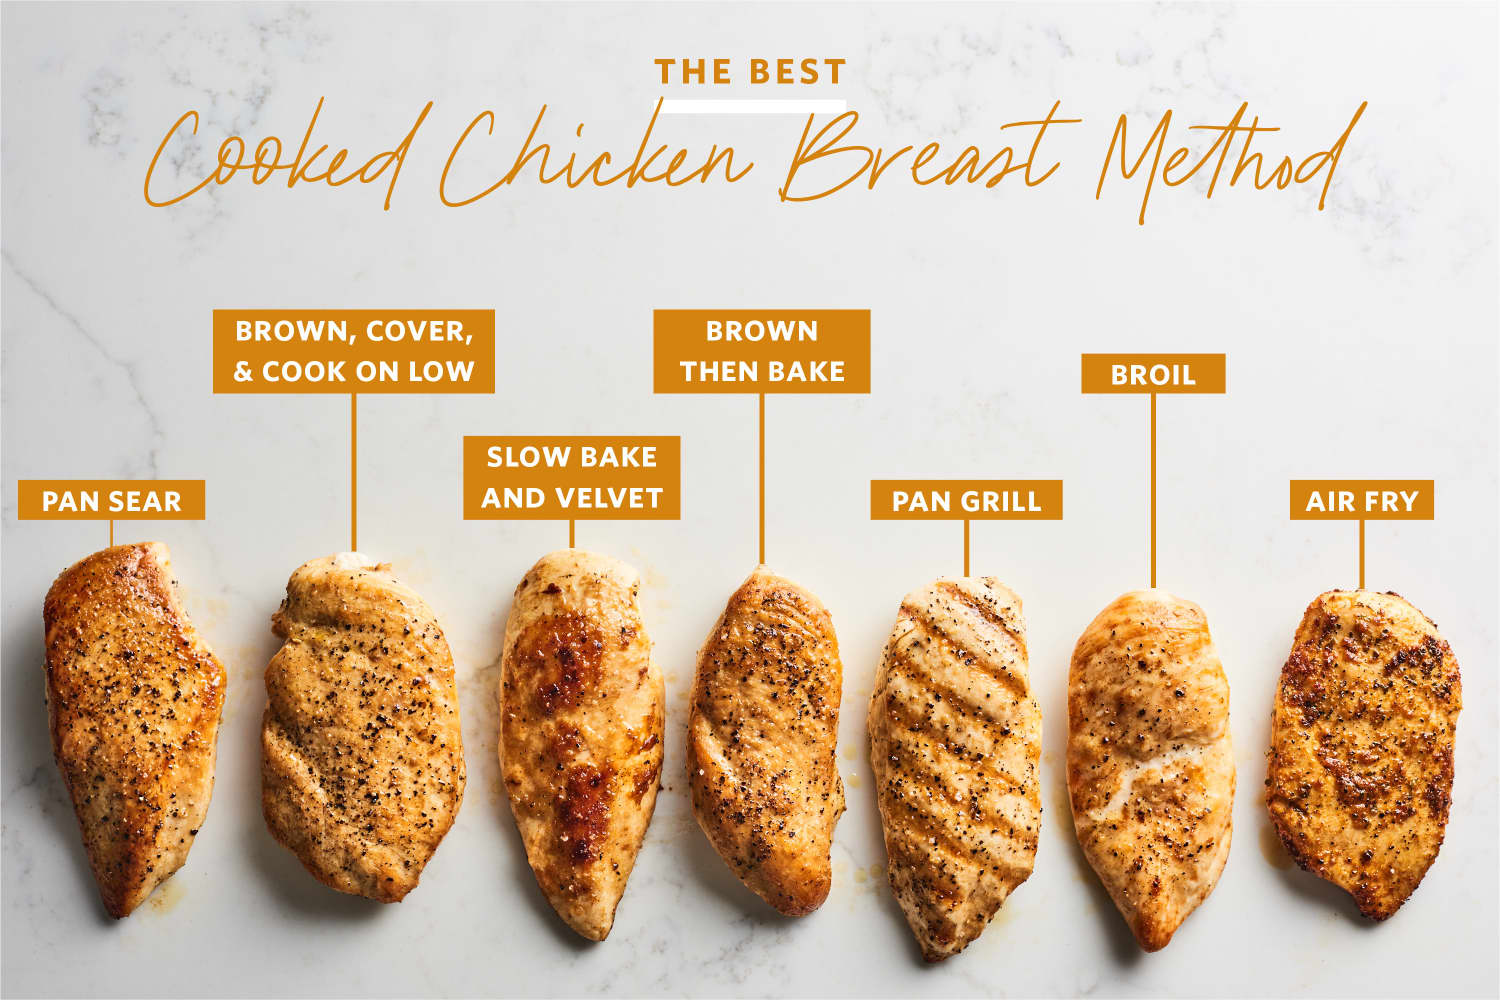 We Tried 7 Methods of Making Chicken Breasts and Found a Clear Winner